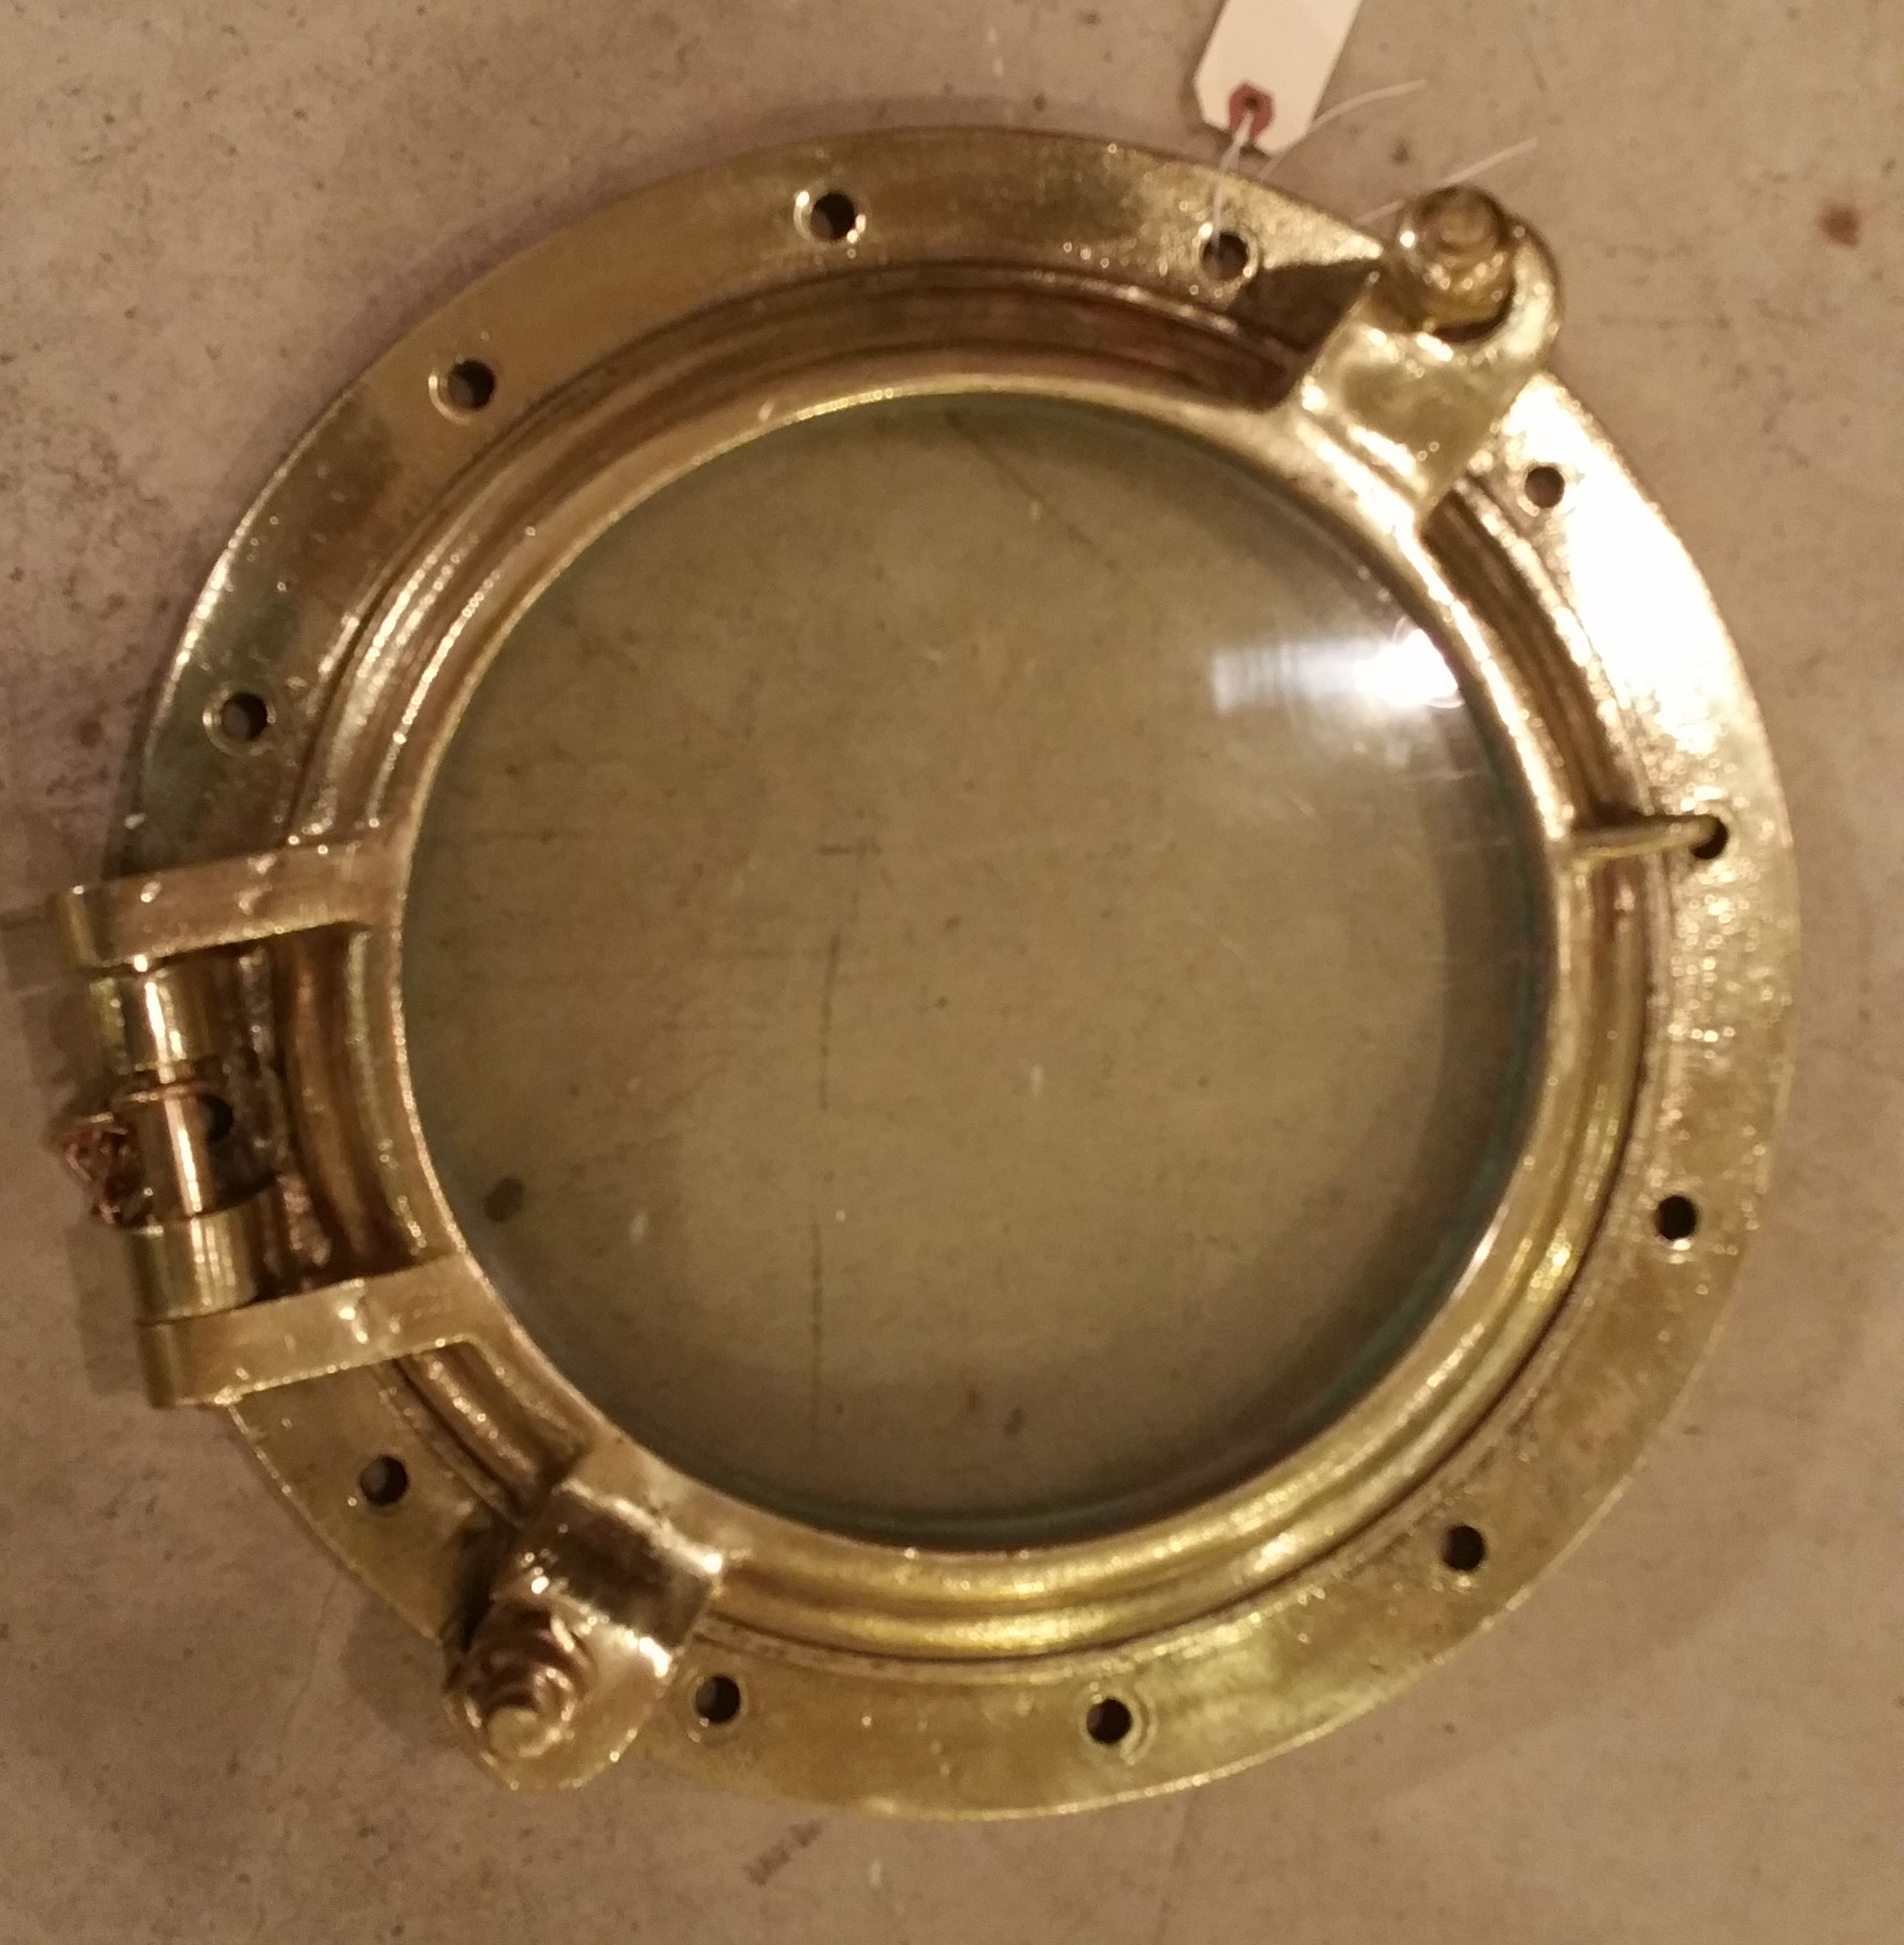 Antique brass ship 39 s port hole has been polished gorgeous from booth 11 shephen harmison - Antique peephole ...